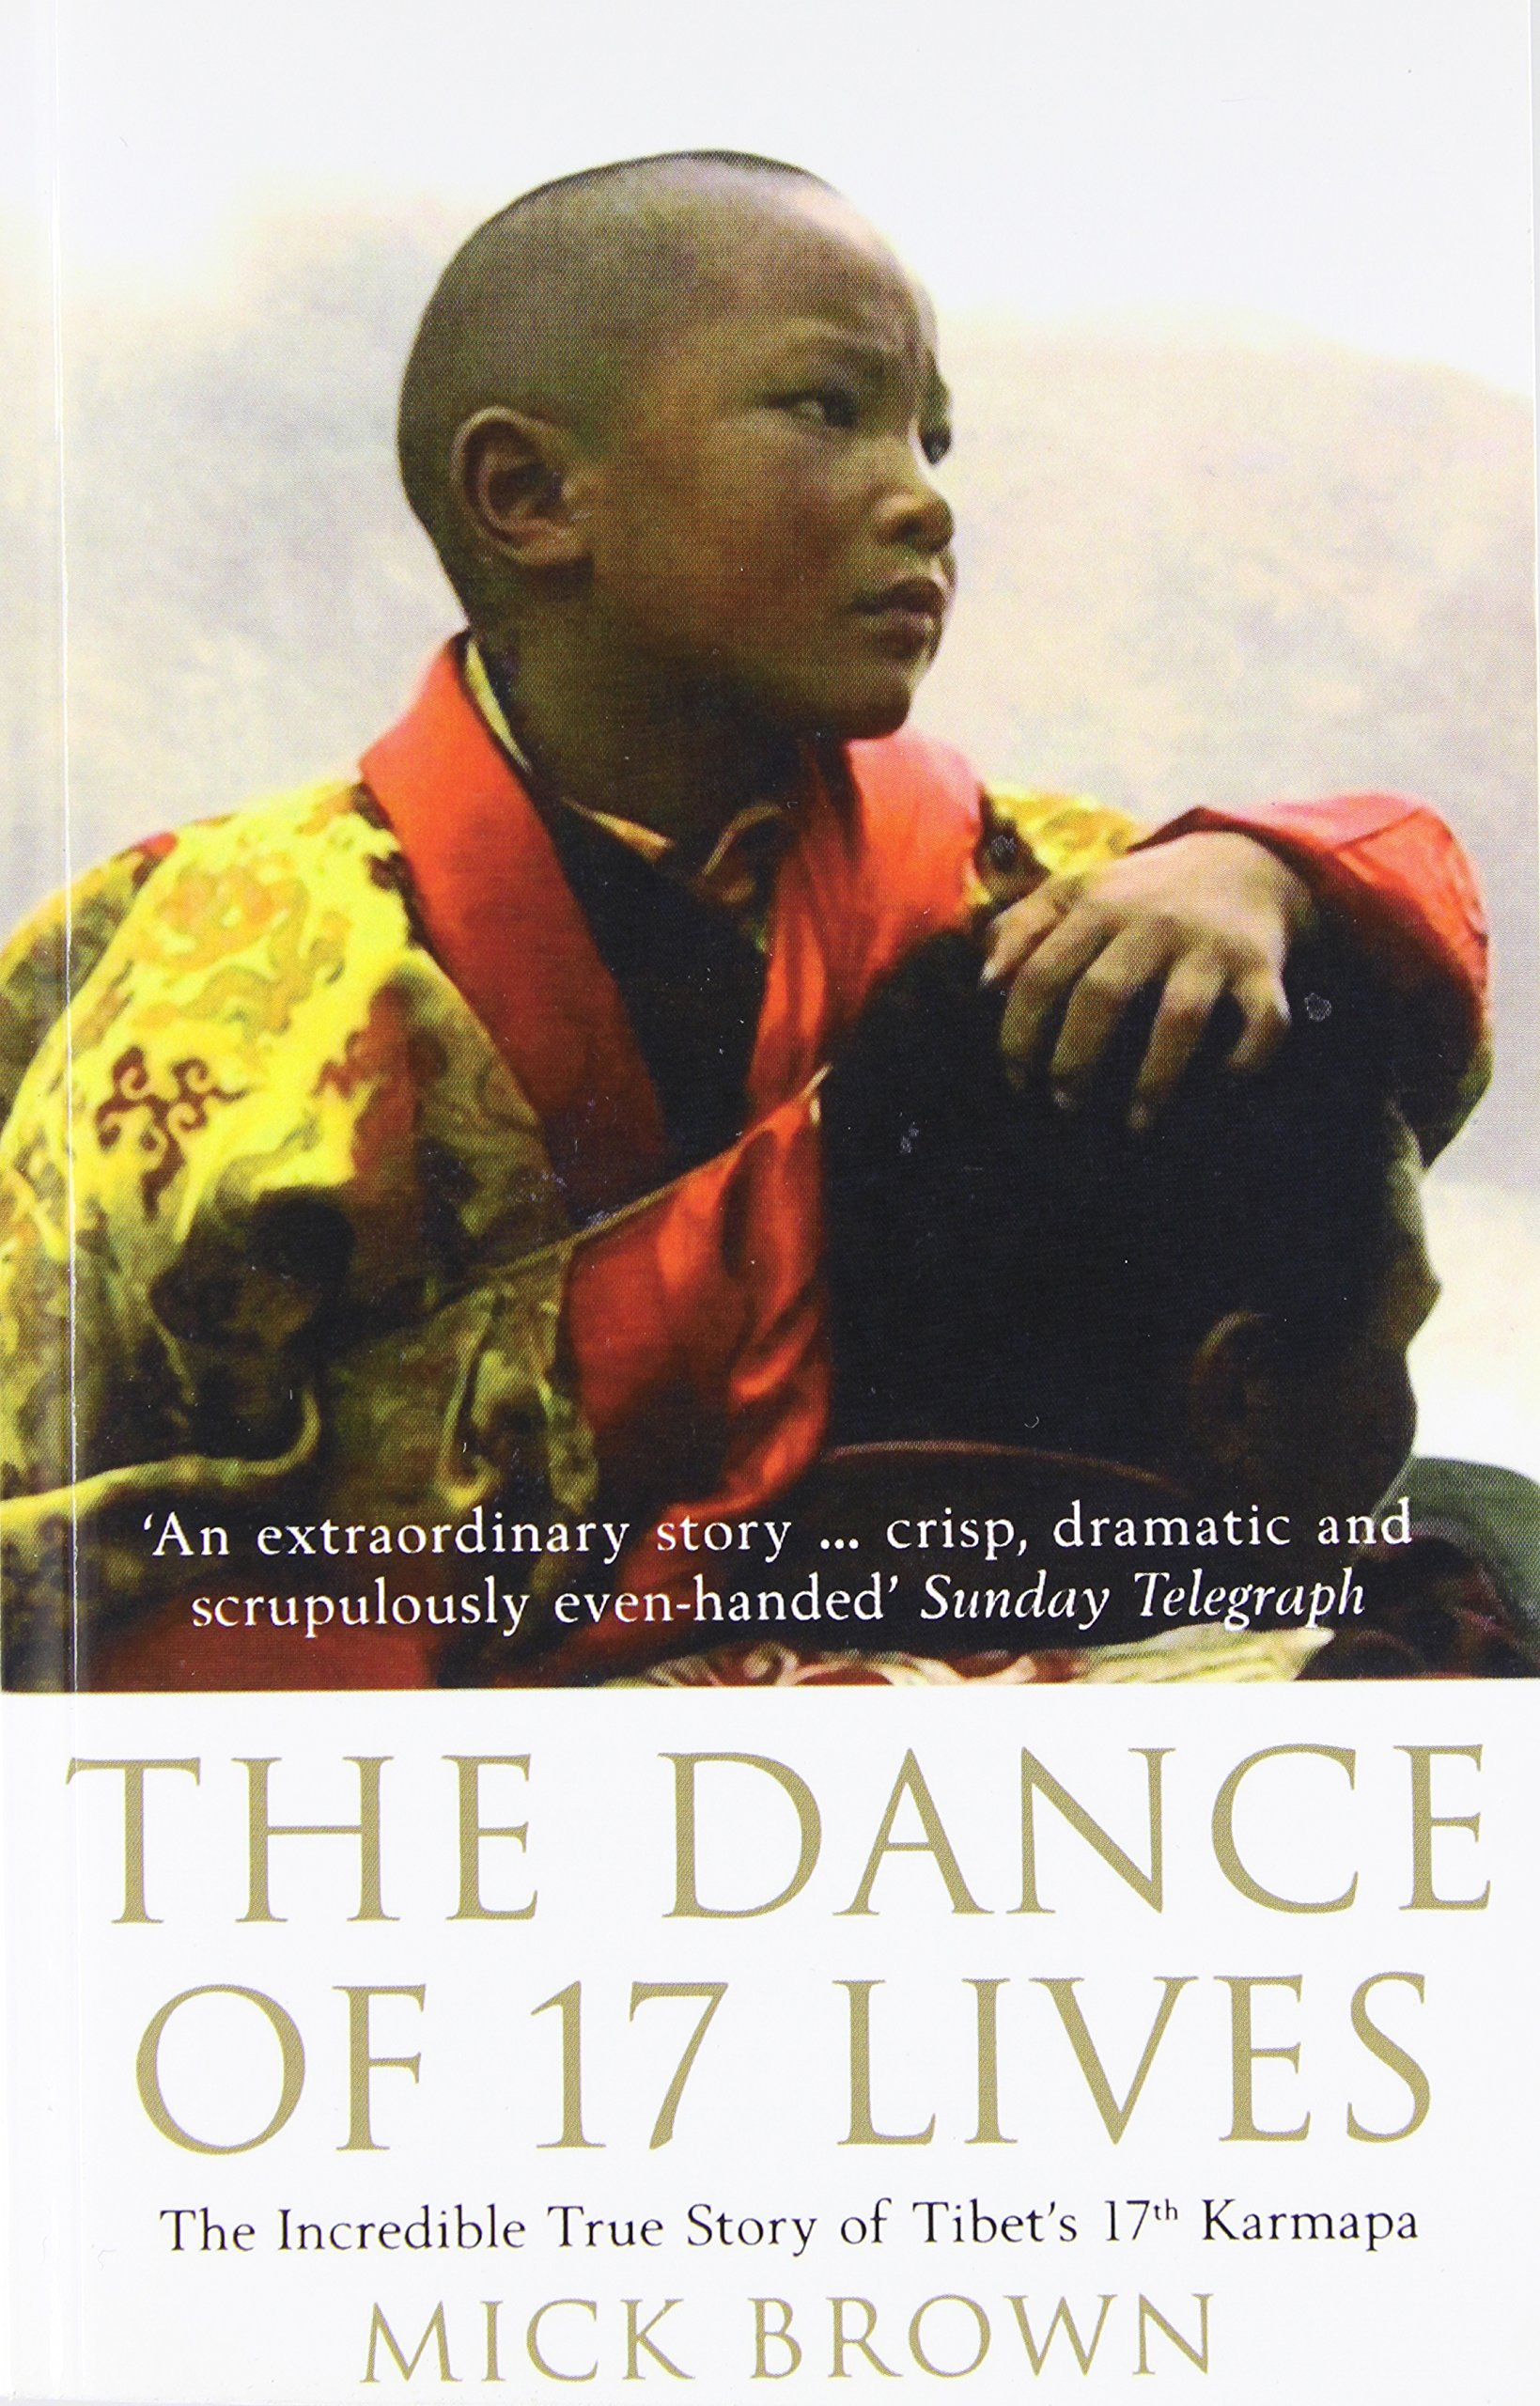 dance-of-17-lives-the-incredible-true-story-of-tibet-s-17th-karmapa